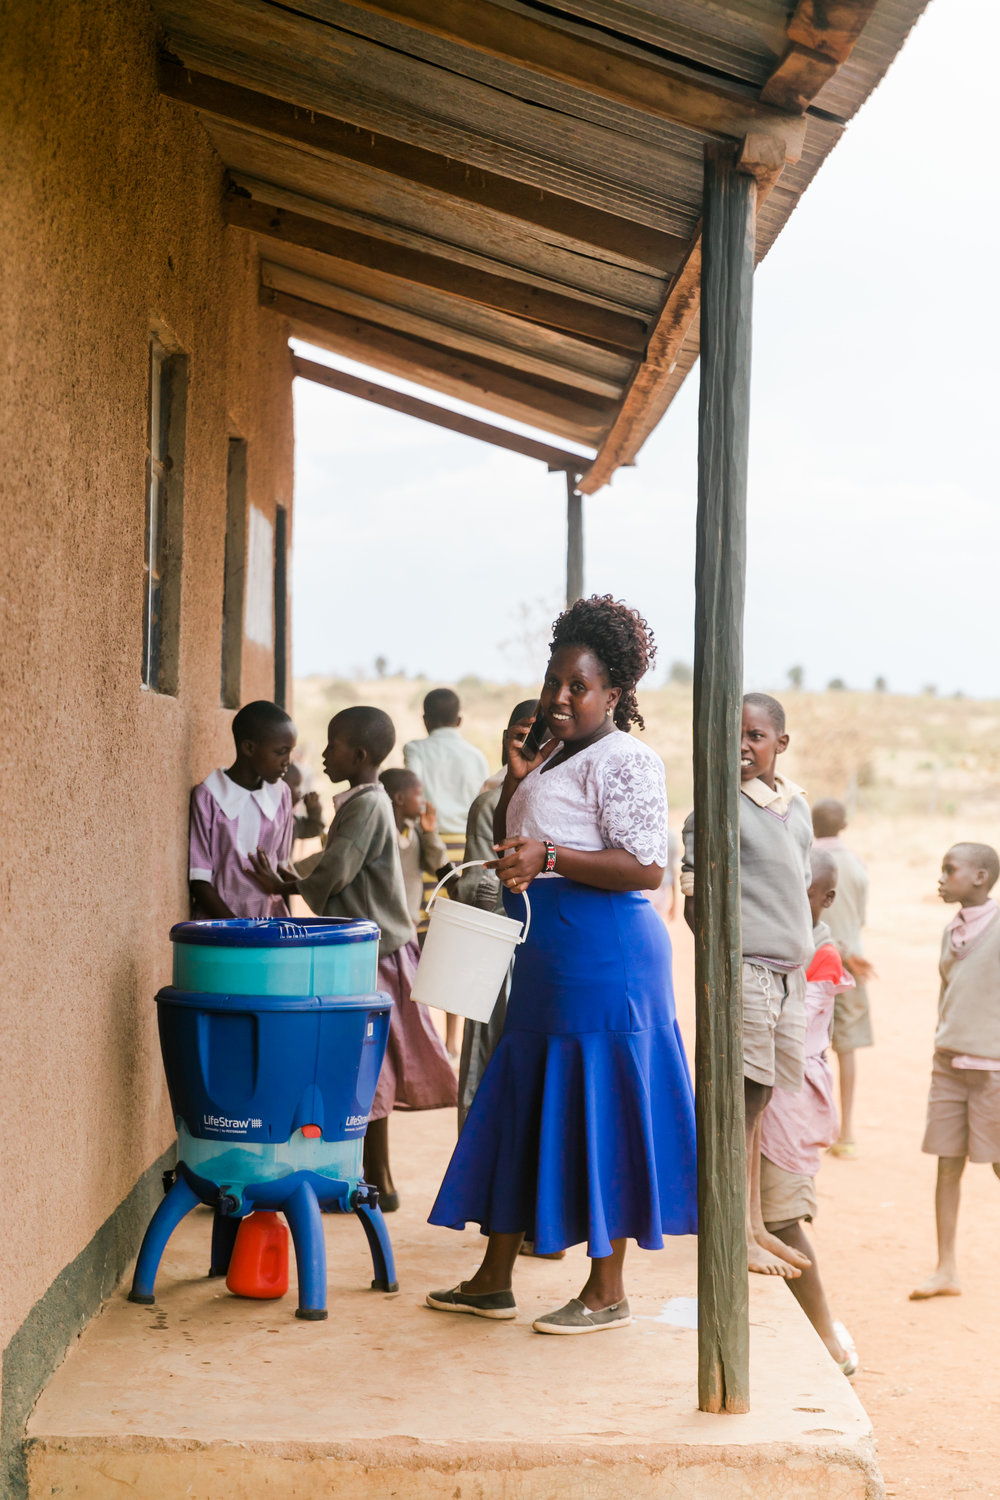 Maasai Mara School Visit - LifeStraw Water Ph. Valorie Darling